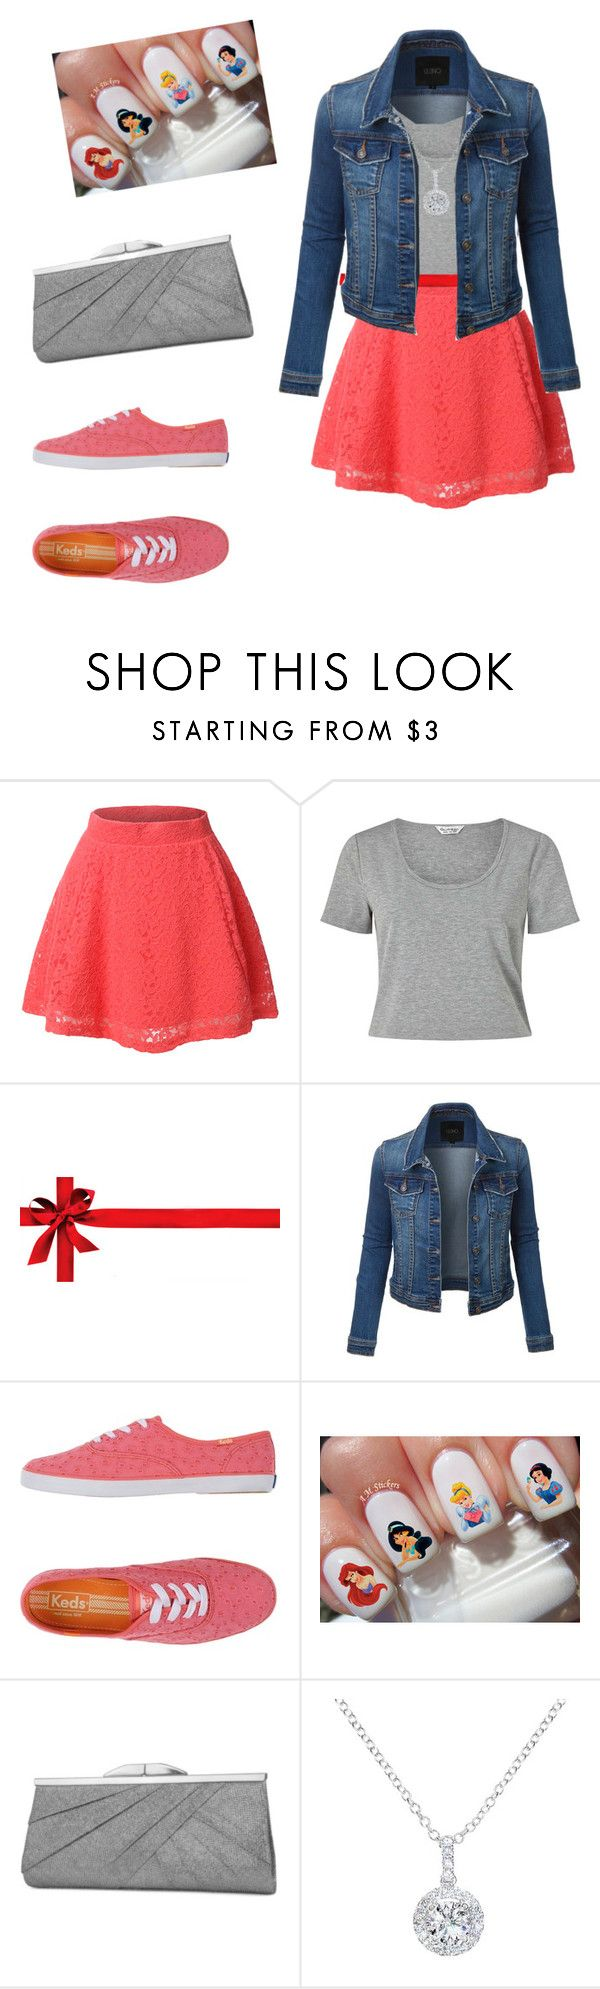 """""""Sensually Grey And Coral Pink Outfit"""" by missykeybuckley ❤ liked on Polyvore featuring LE3NO, Miss Selfridge, Keds, Disney, Jessica McClintock and EWA"""